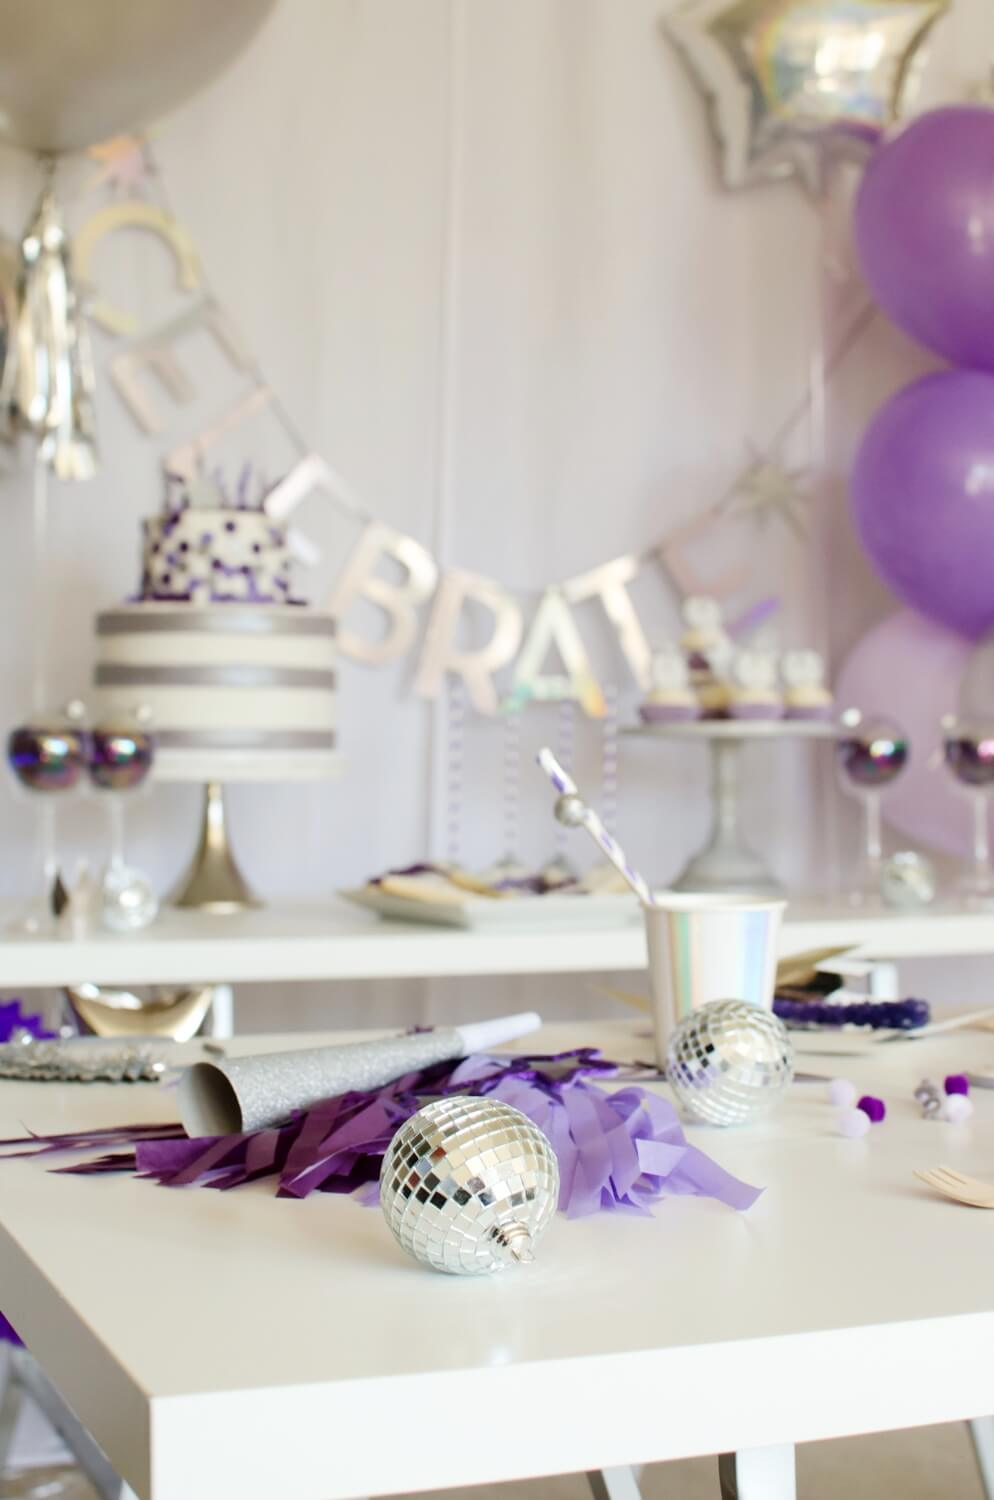 New Years party ideas and inspiration!